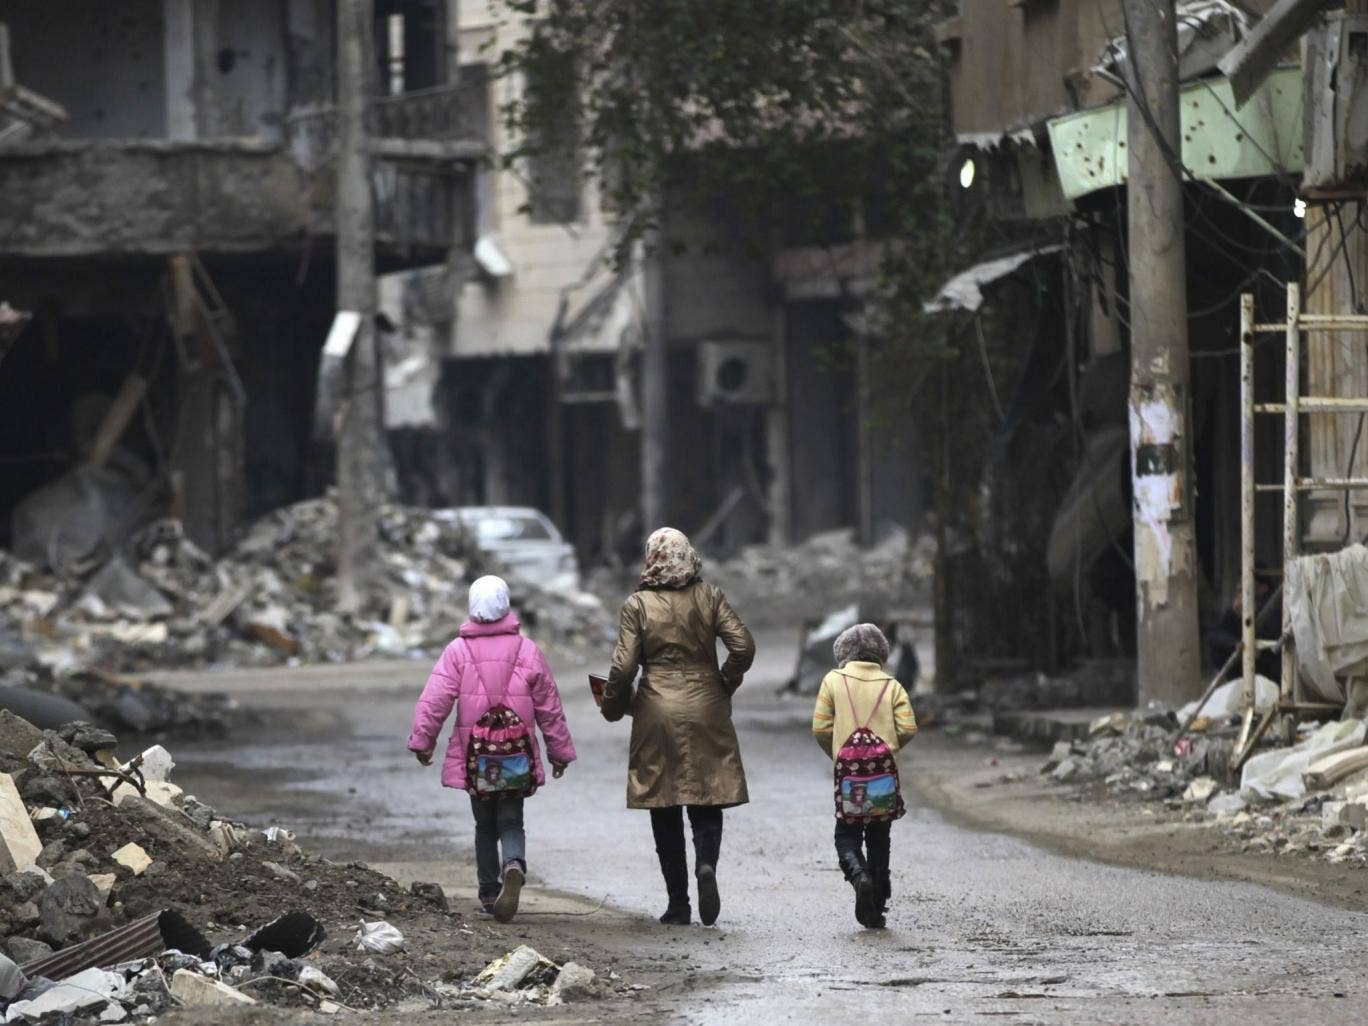 A woman walks with her children along a damaged street filled with debris in Deir al-Zor, eastern Syria